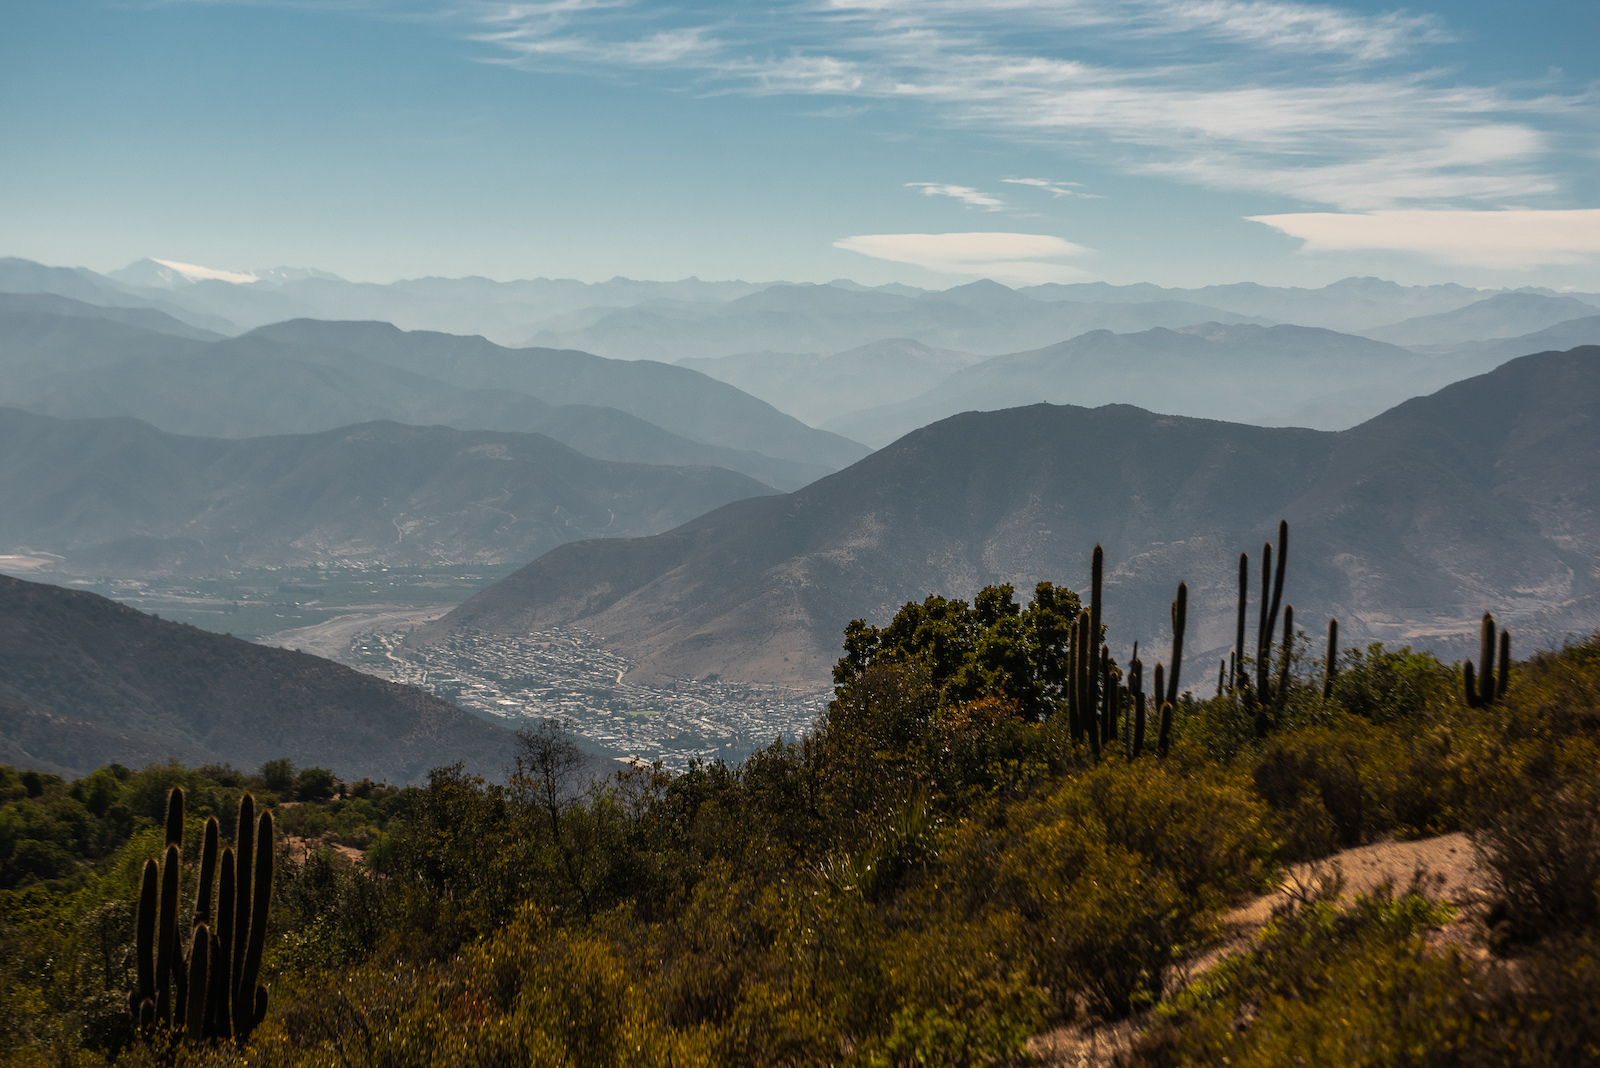 With the Andes oil the rear view the race headed for the Coastal Range.